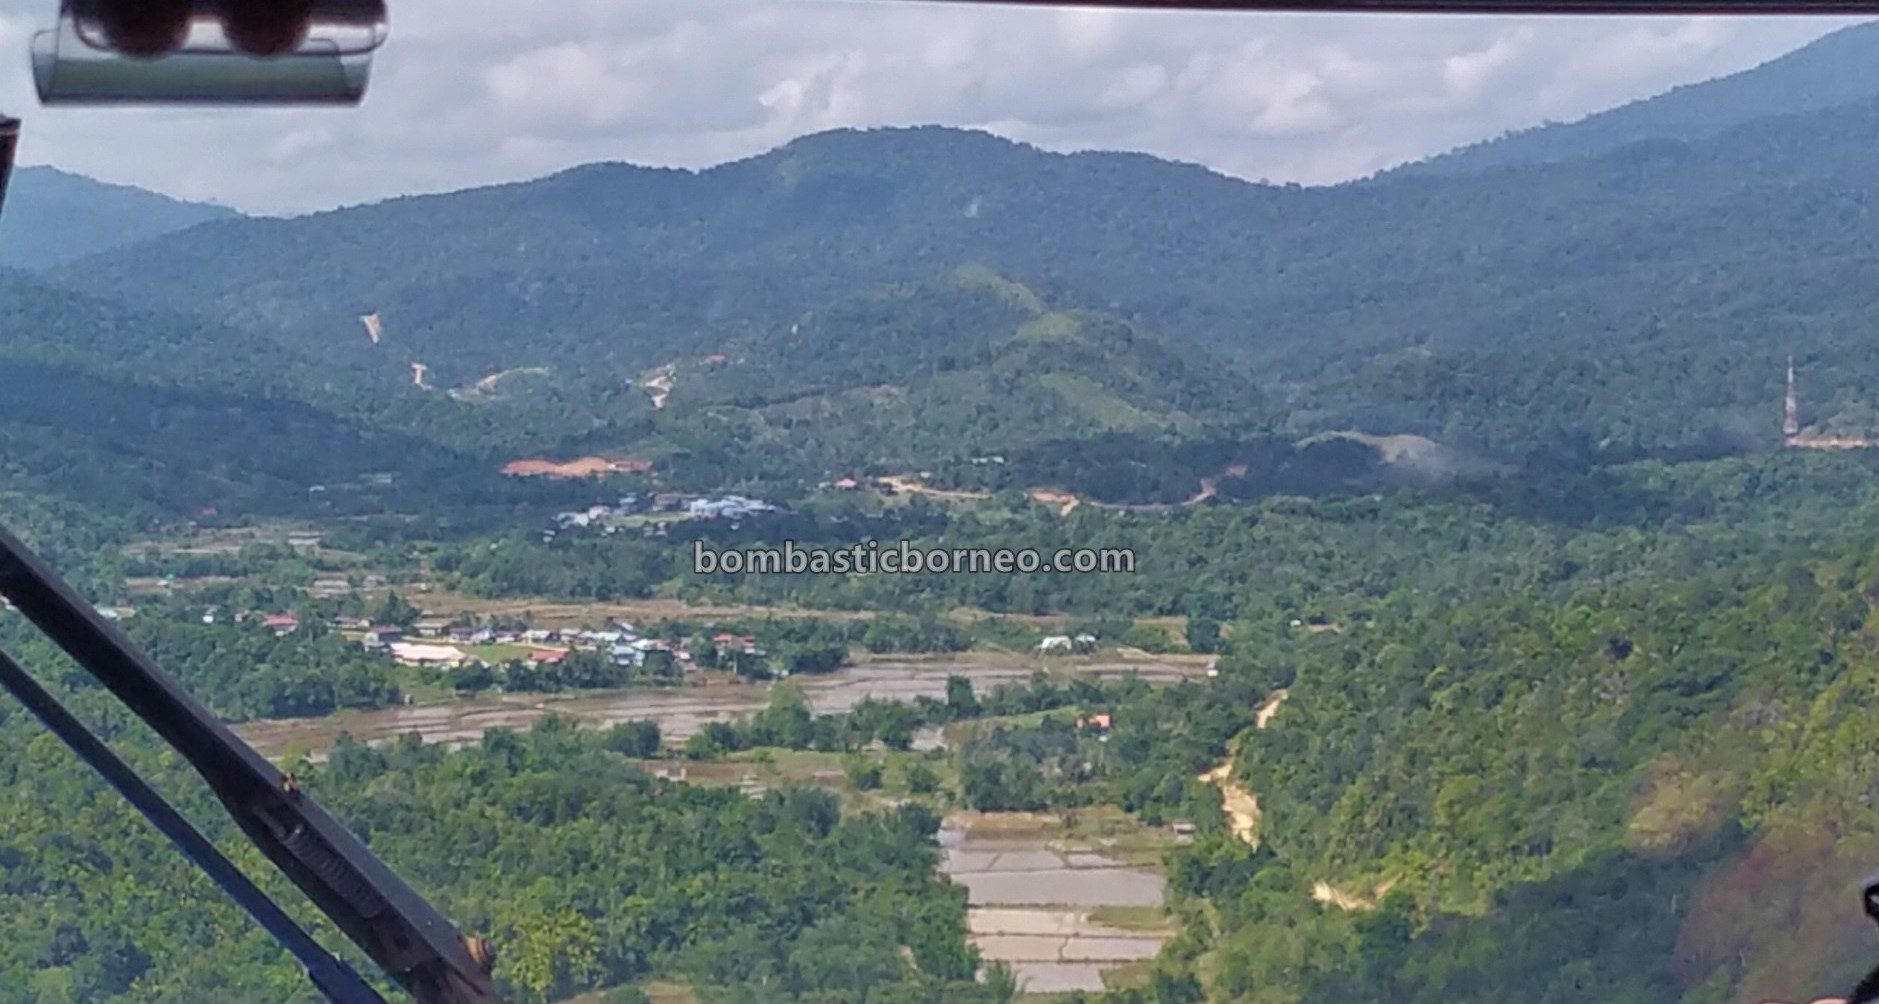 Ba'kelalan, destination, exploration, Interior, village, Maligan Highlands, Limbang, Sarawak, Malaysia, Lun Bawang, Orang Ulu, native, Tourism, Travel Guide, Trans Borneo,